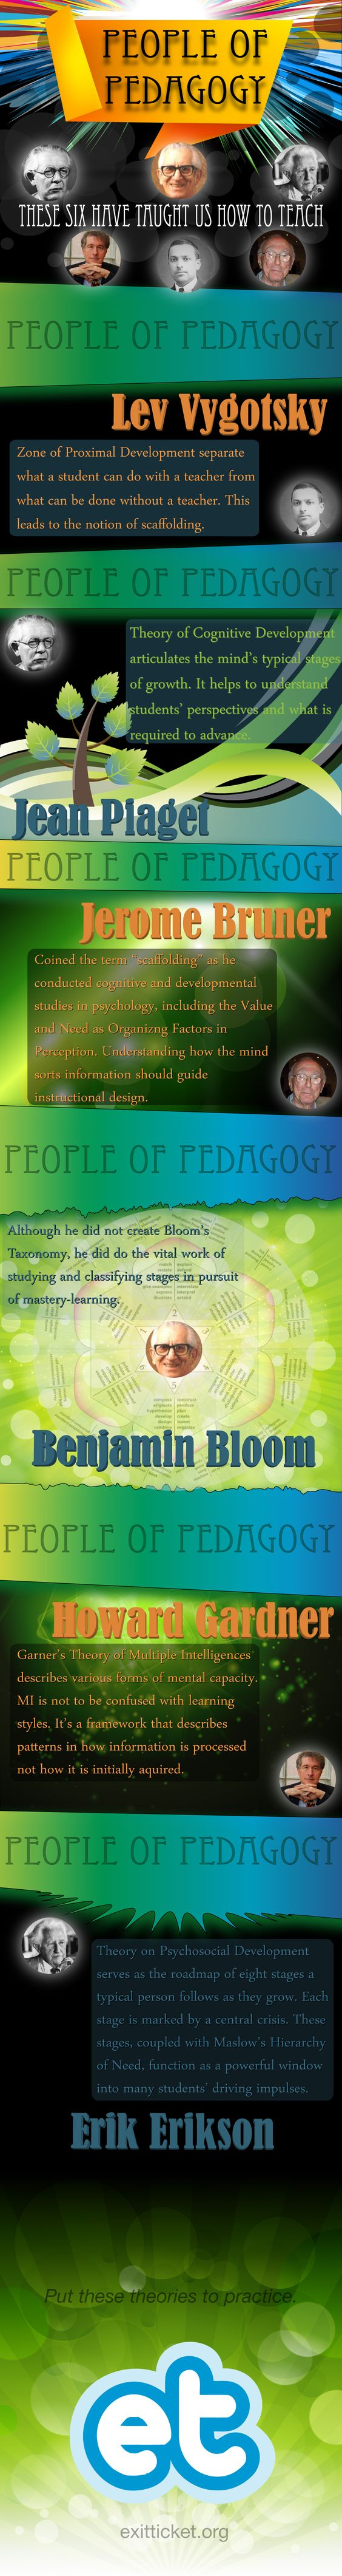 """People in Pedagogy"" - Six pillars of education"